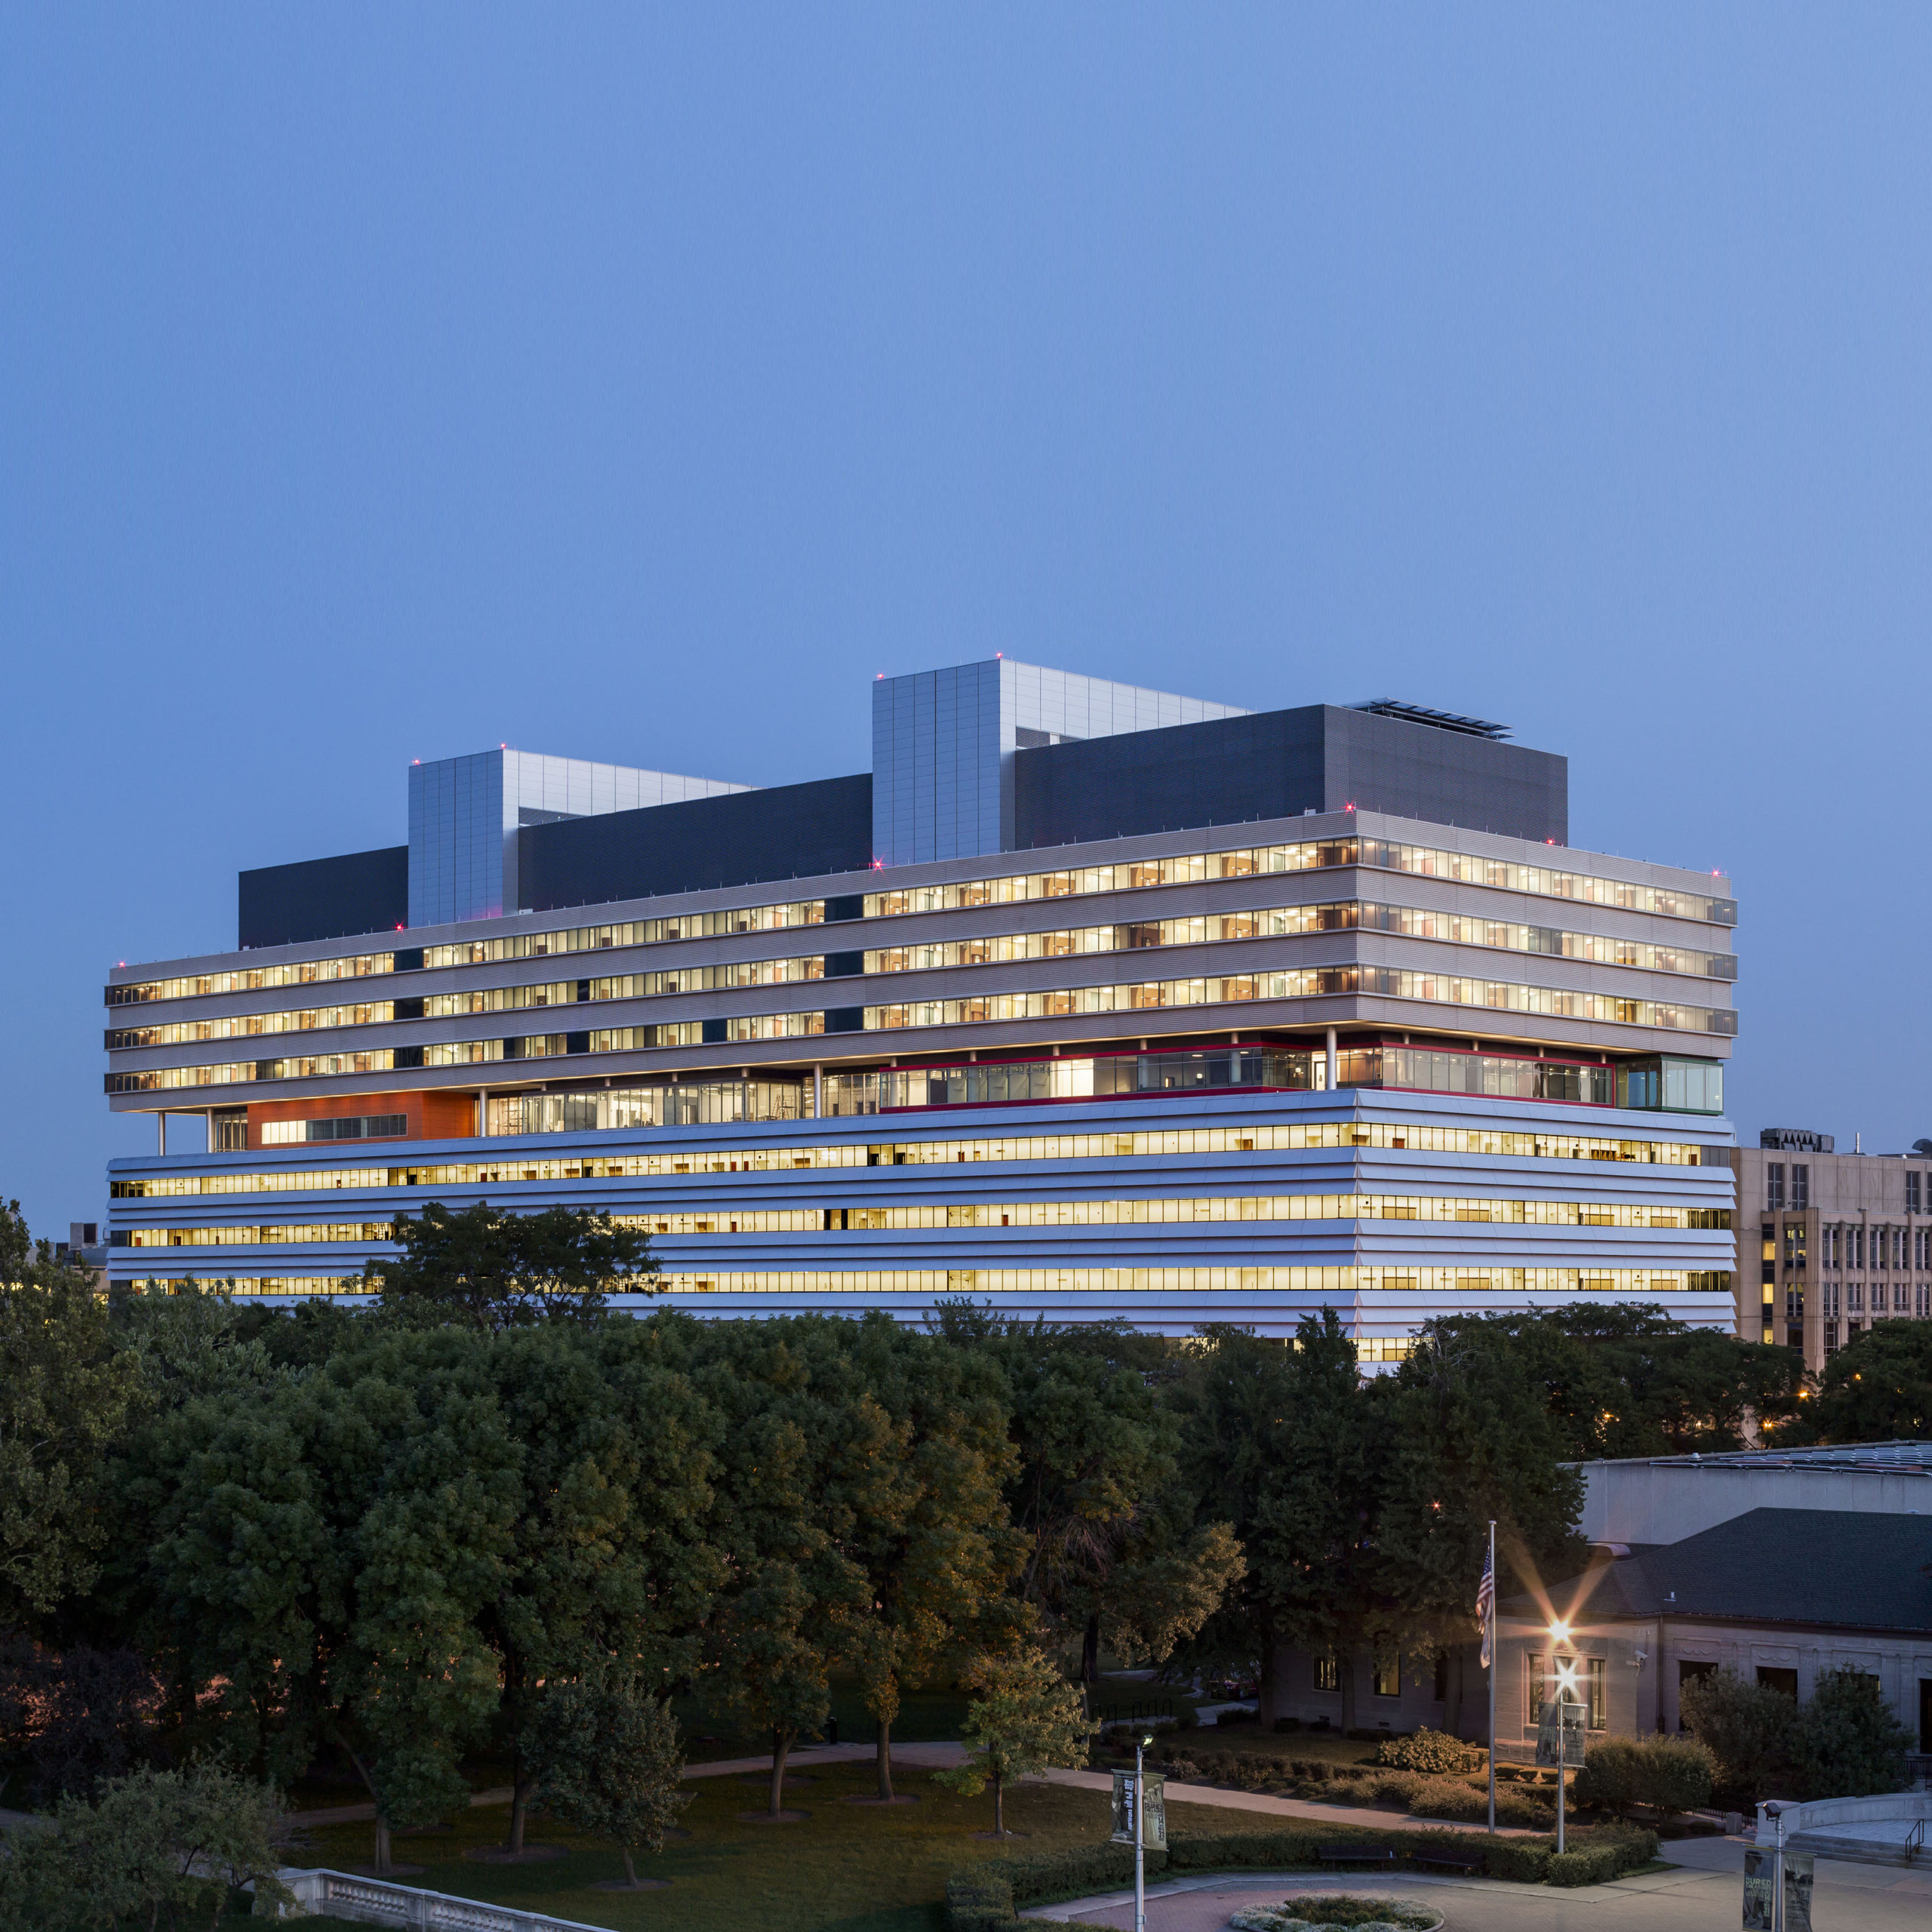 University of Chicago Medicine, Center for Care and Discovery. ©Tom Rossiter, Courtesy Rafael Viñoly Architects